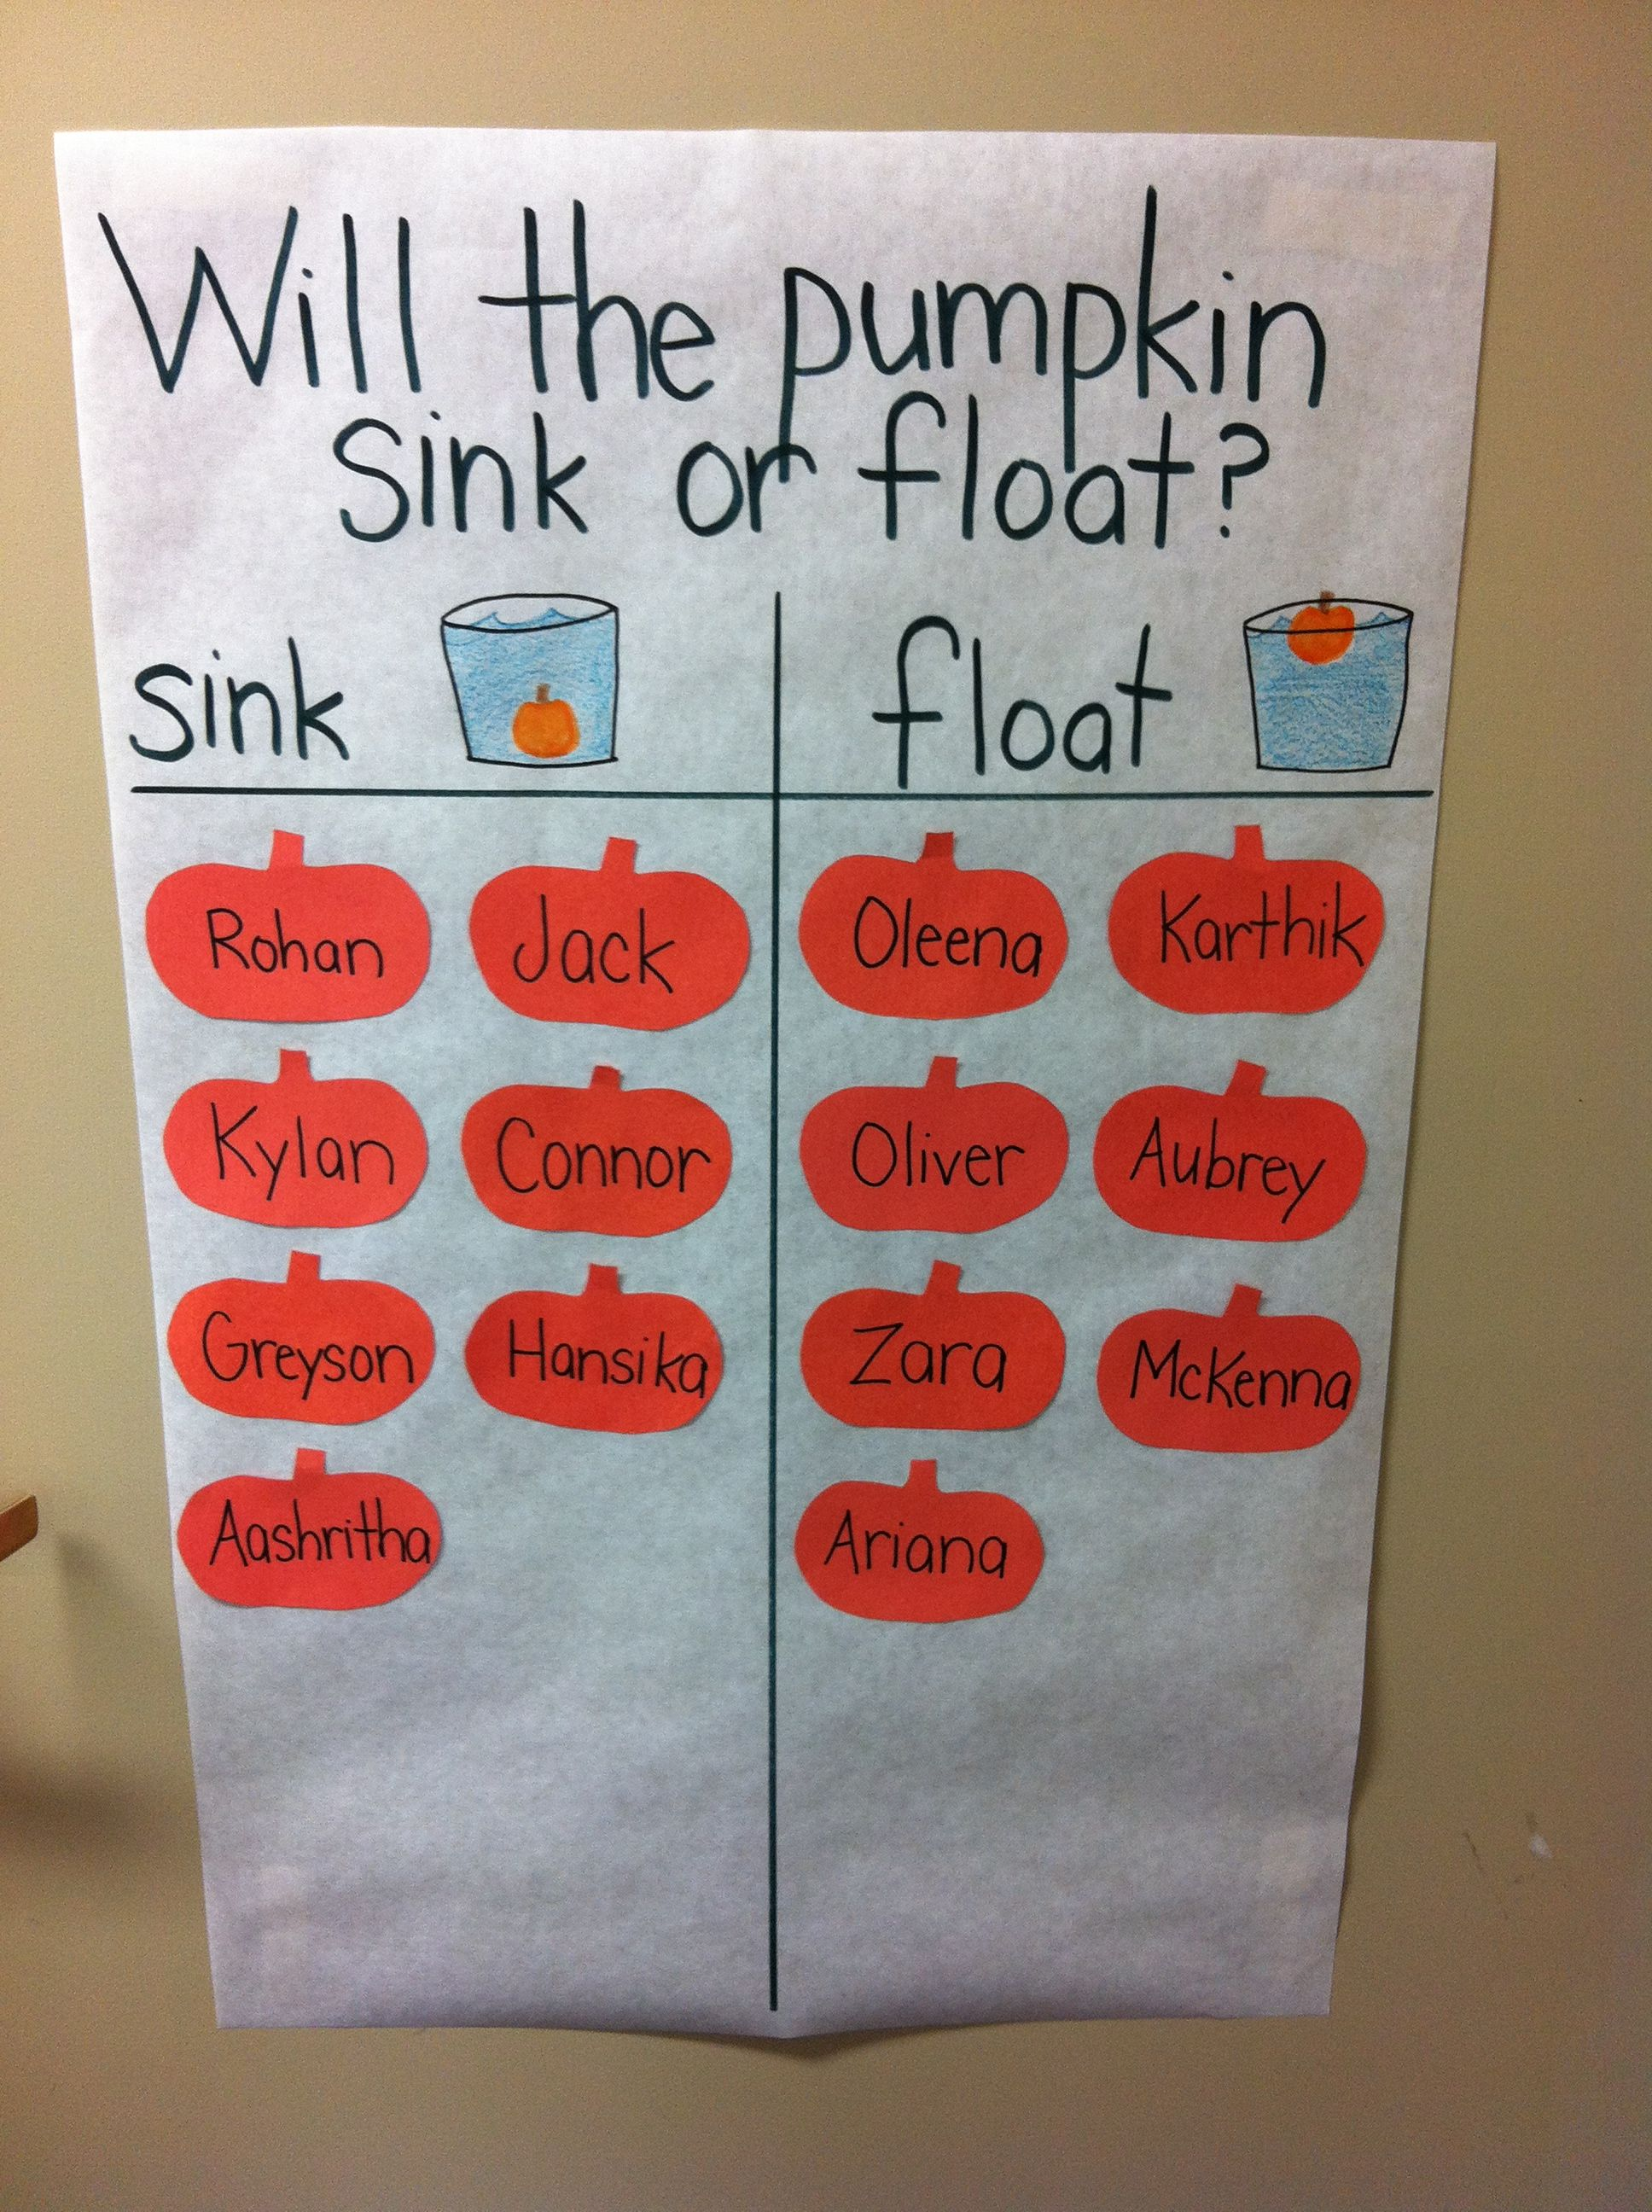 Will A Pumpkin Sink Or Float Our Class T Chart To Record